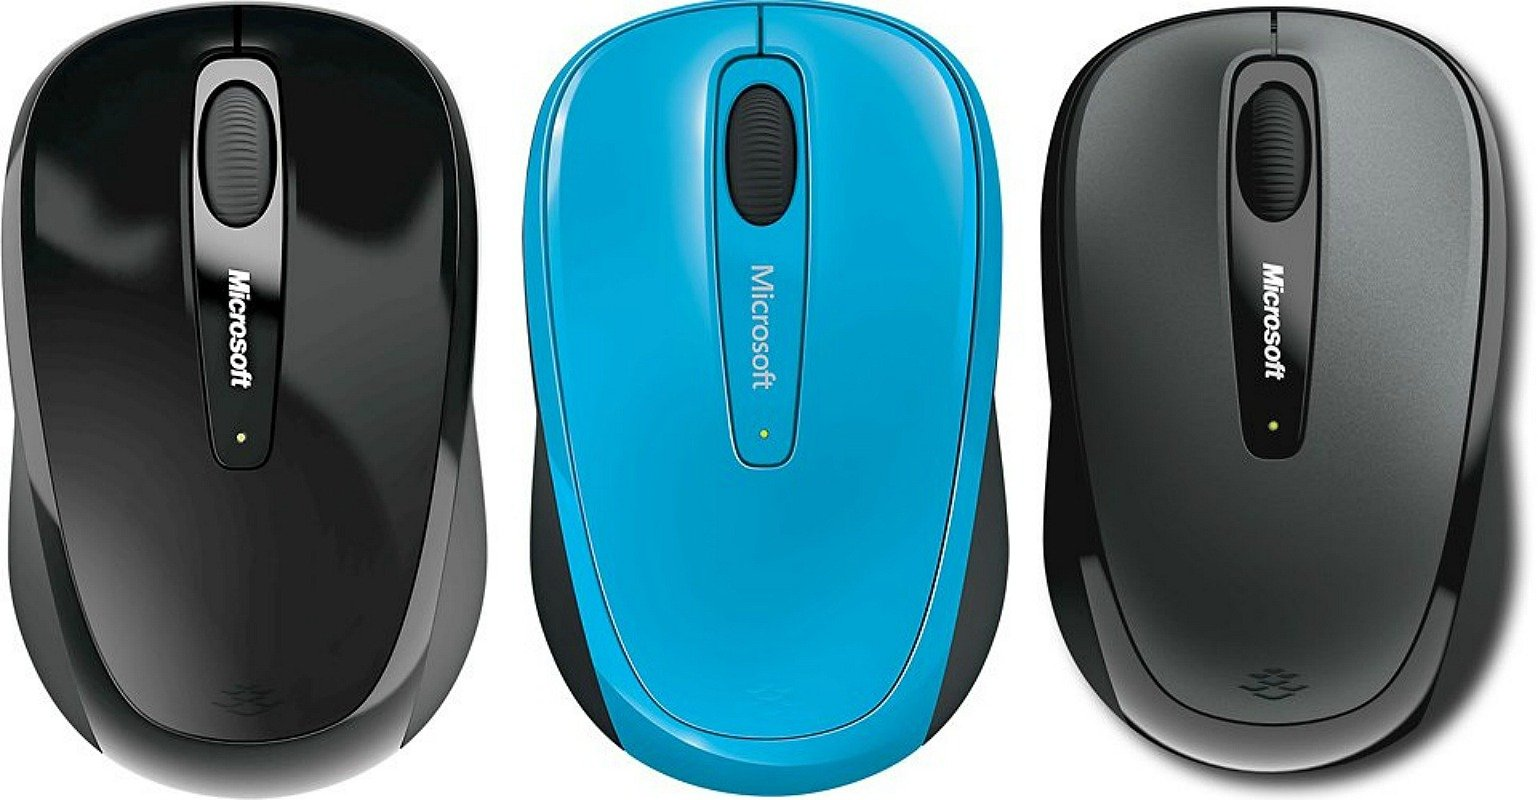 microsoft wireless mouse at best buy